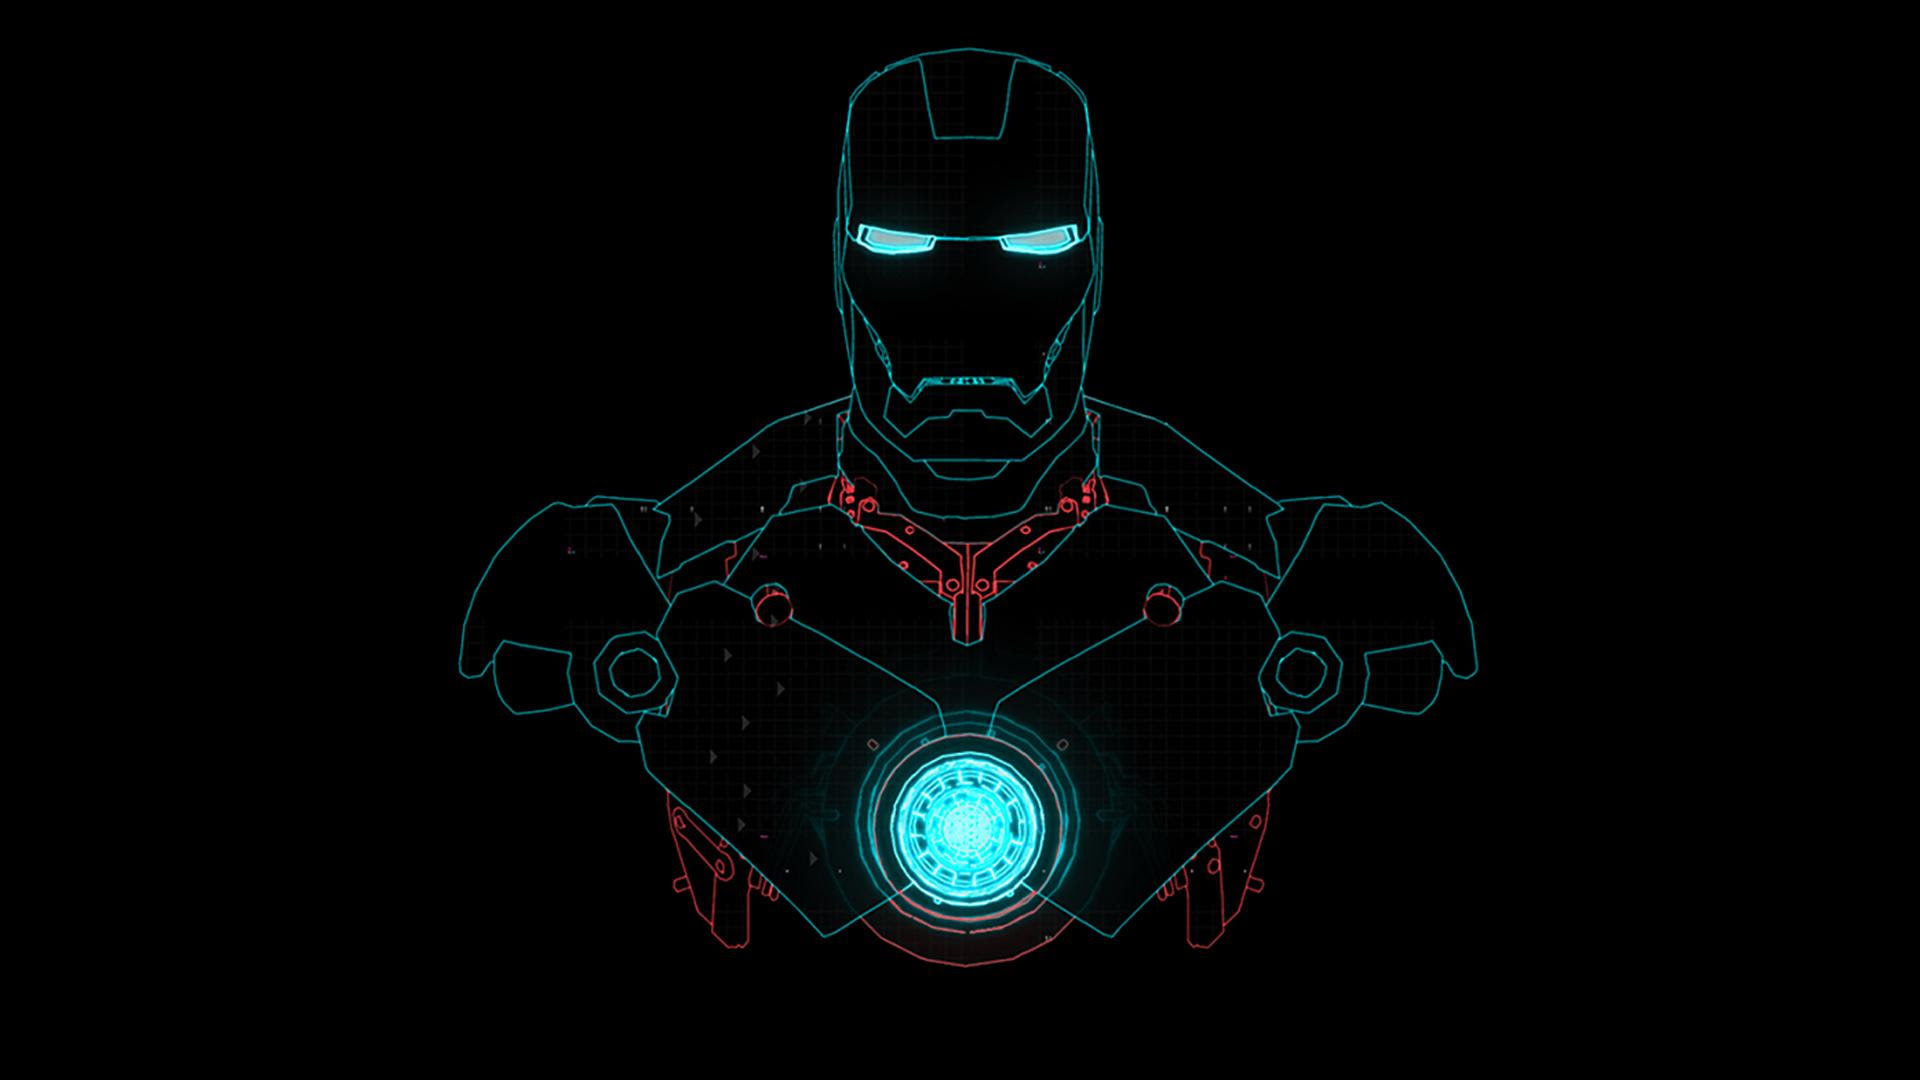 Iron Man Iron Man 3 Wallpaper 31868258 Fanpop